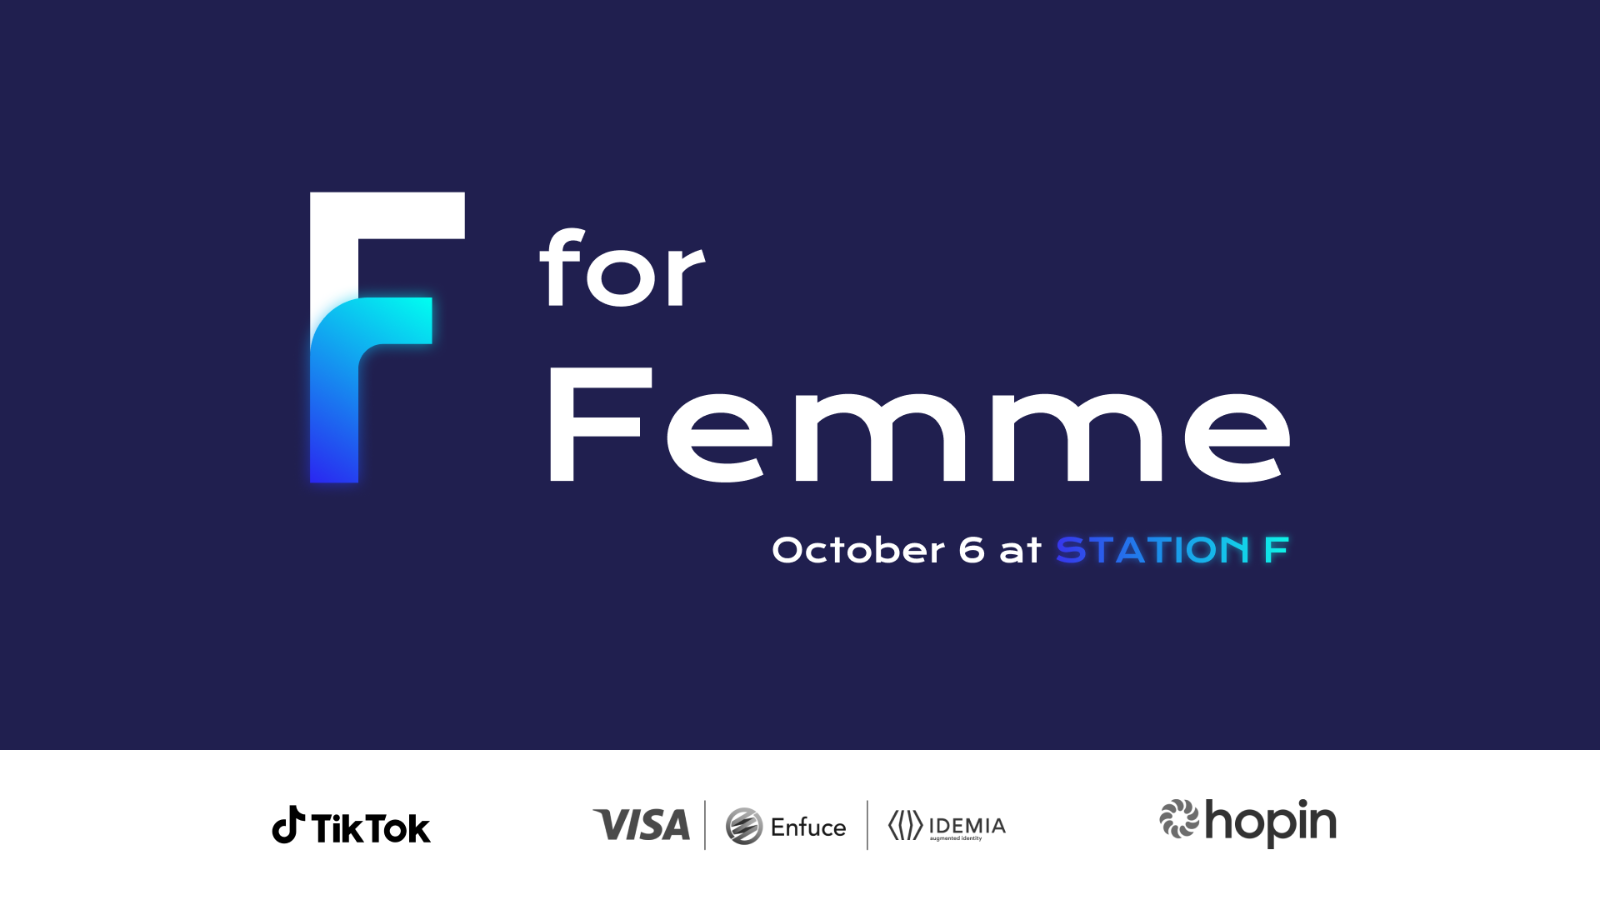 """Thumbnail for news article called STATION F to host """"F for Femme"""", an exclusive event dedicated to female entrepreneurship on October 6th"""